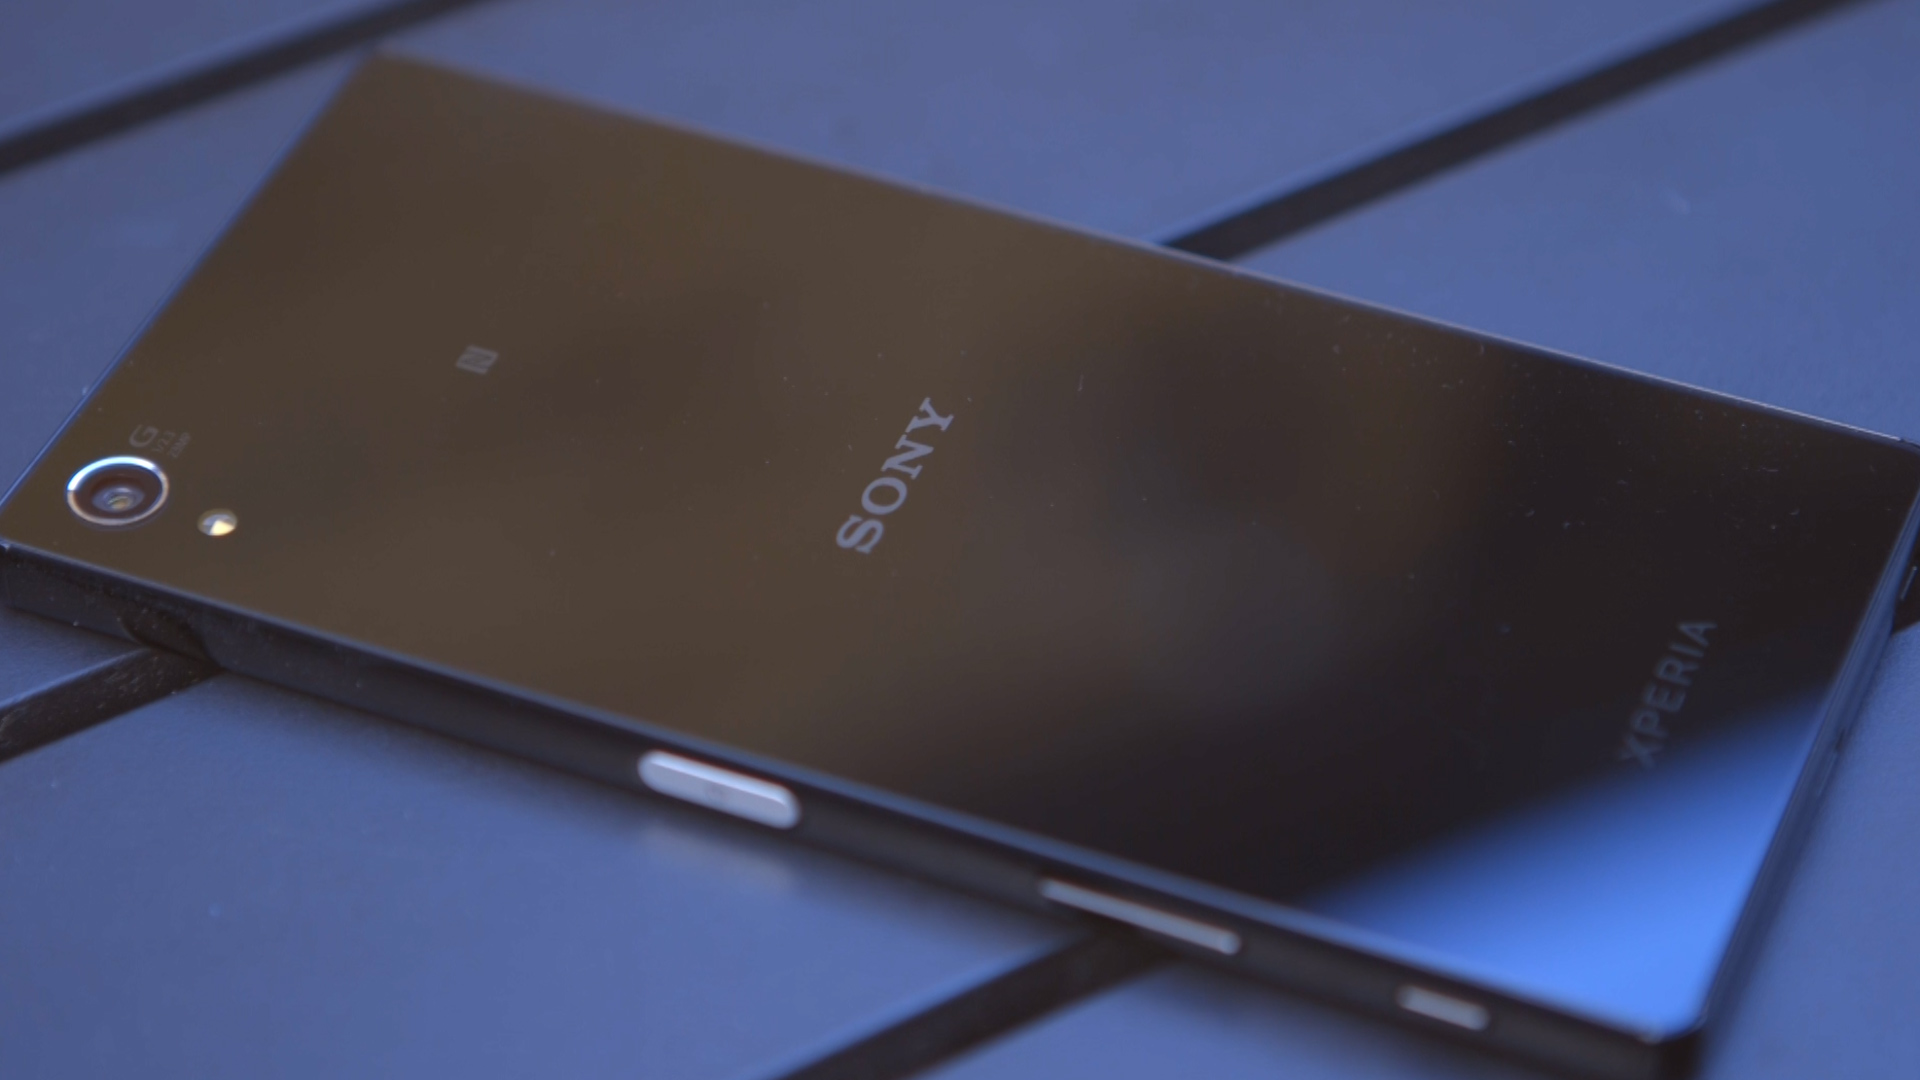 Video: Watch the Sony Xperia Z5 Premium's 4K screen shrug off a splashing